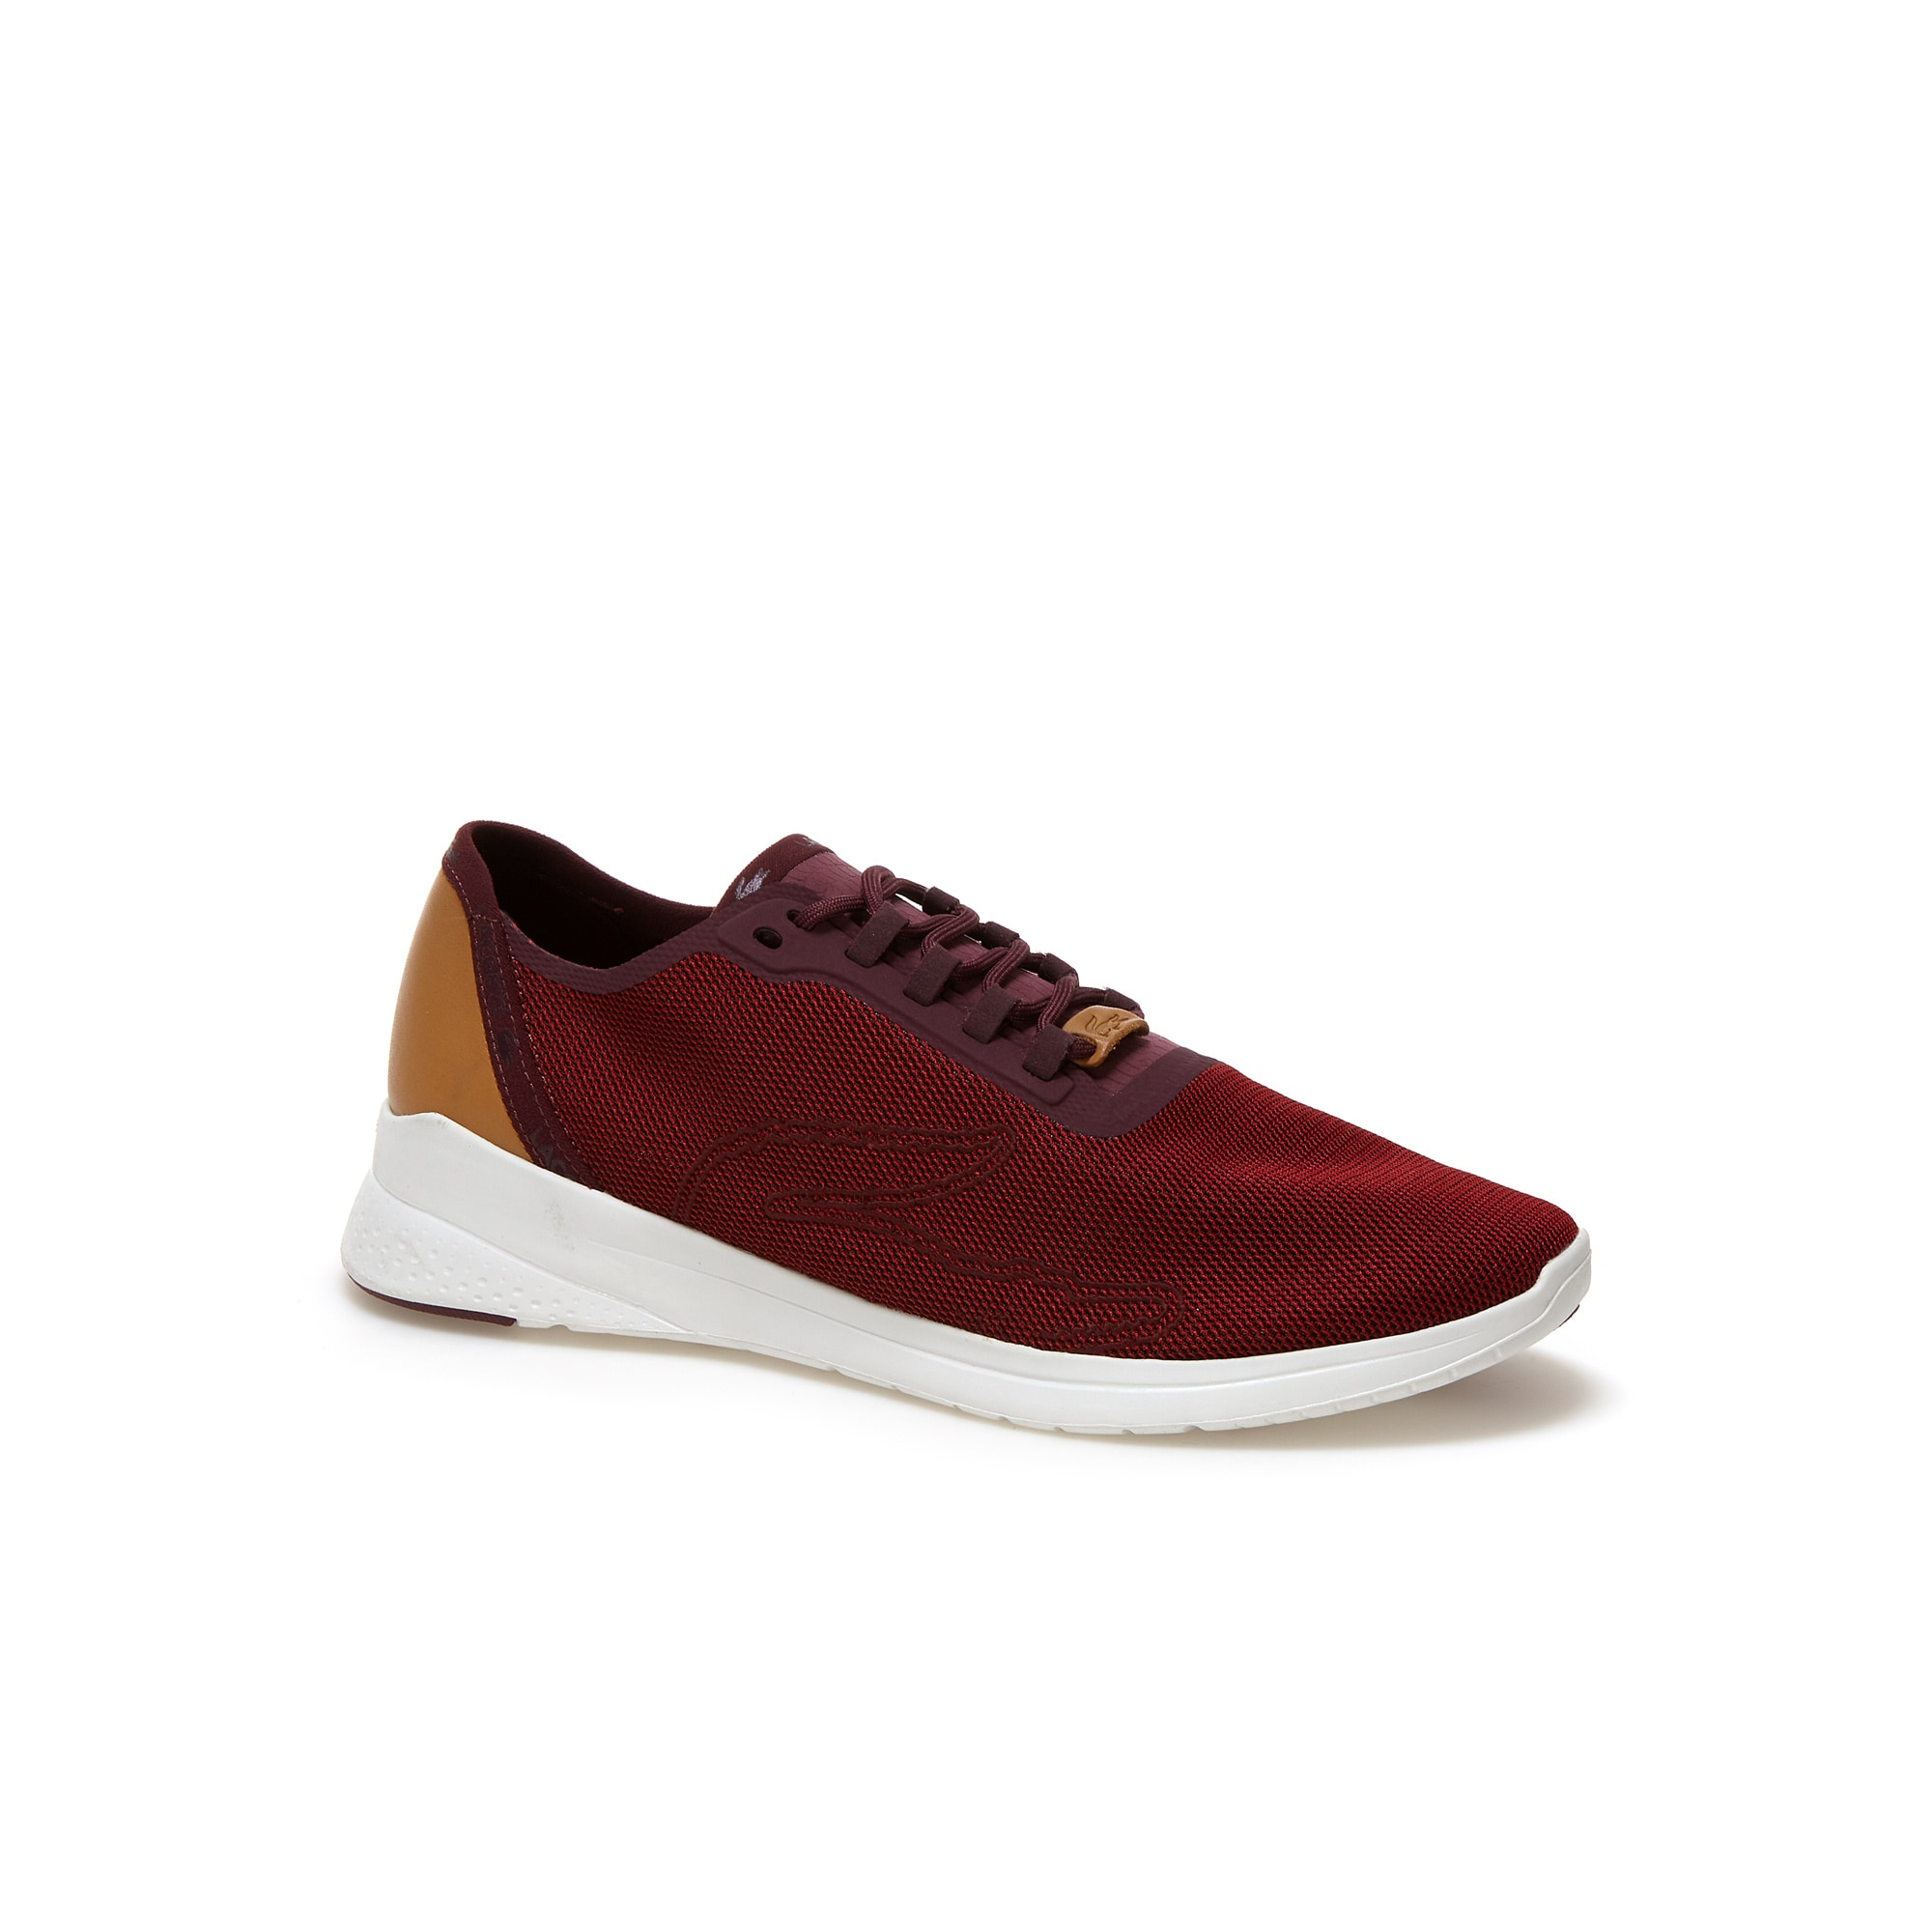 Men's LT Fit Textile Trainers